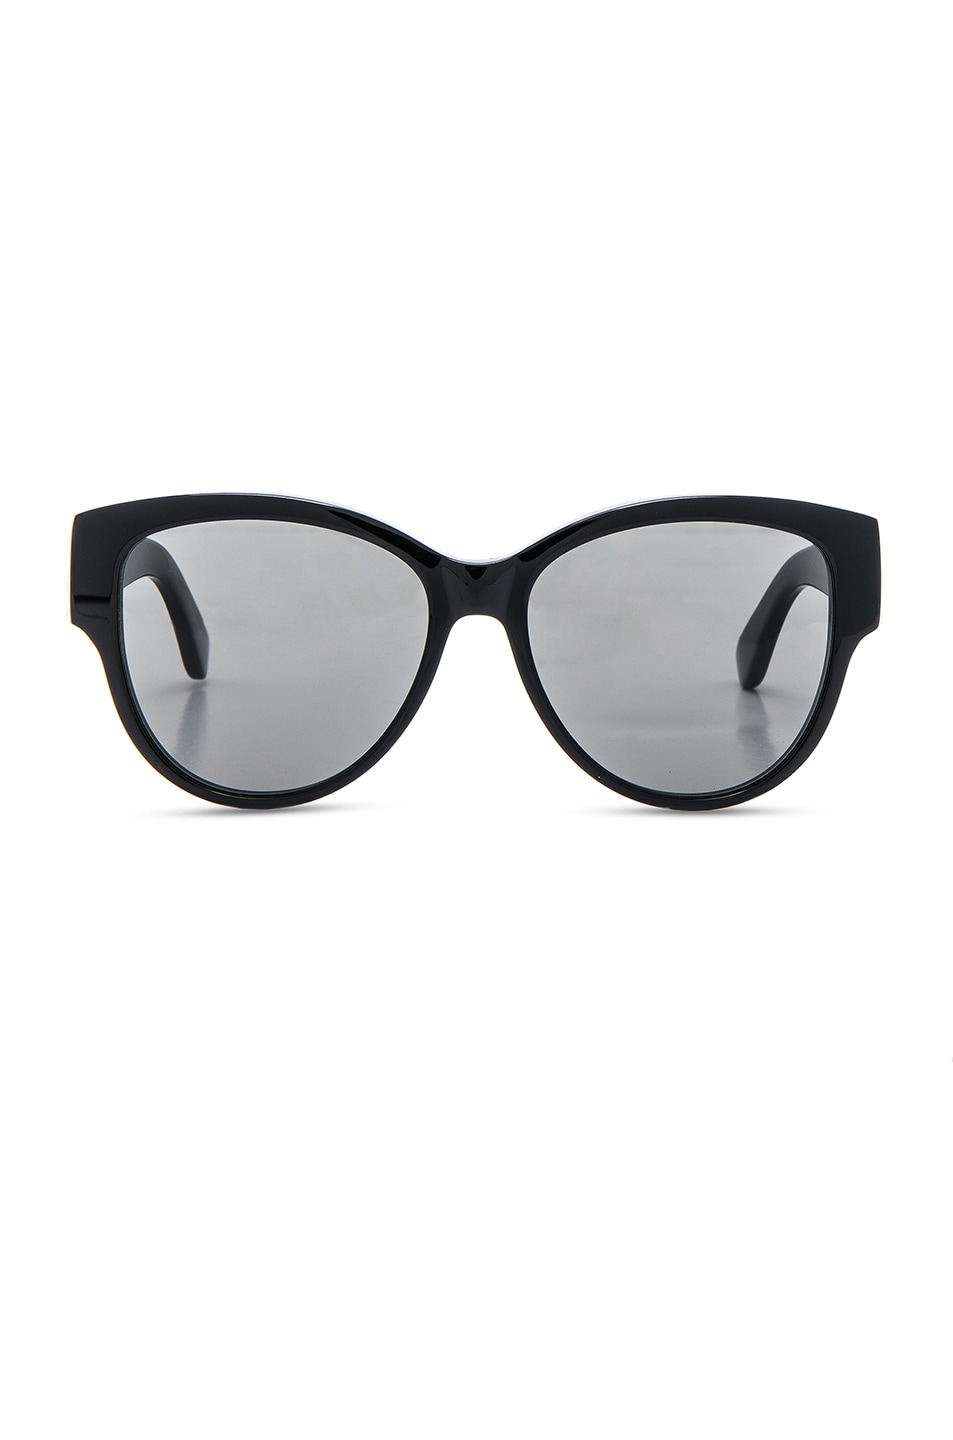 Image 1 of Saint Laurent SL M3 Sunglasses in Black & Grey